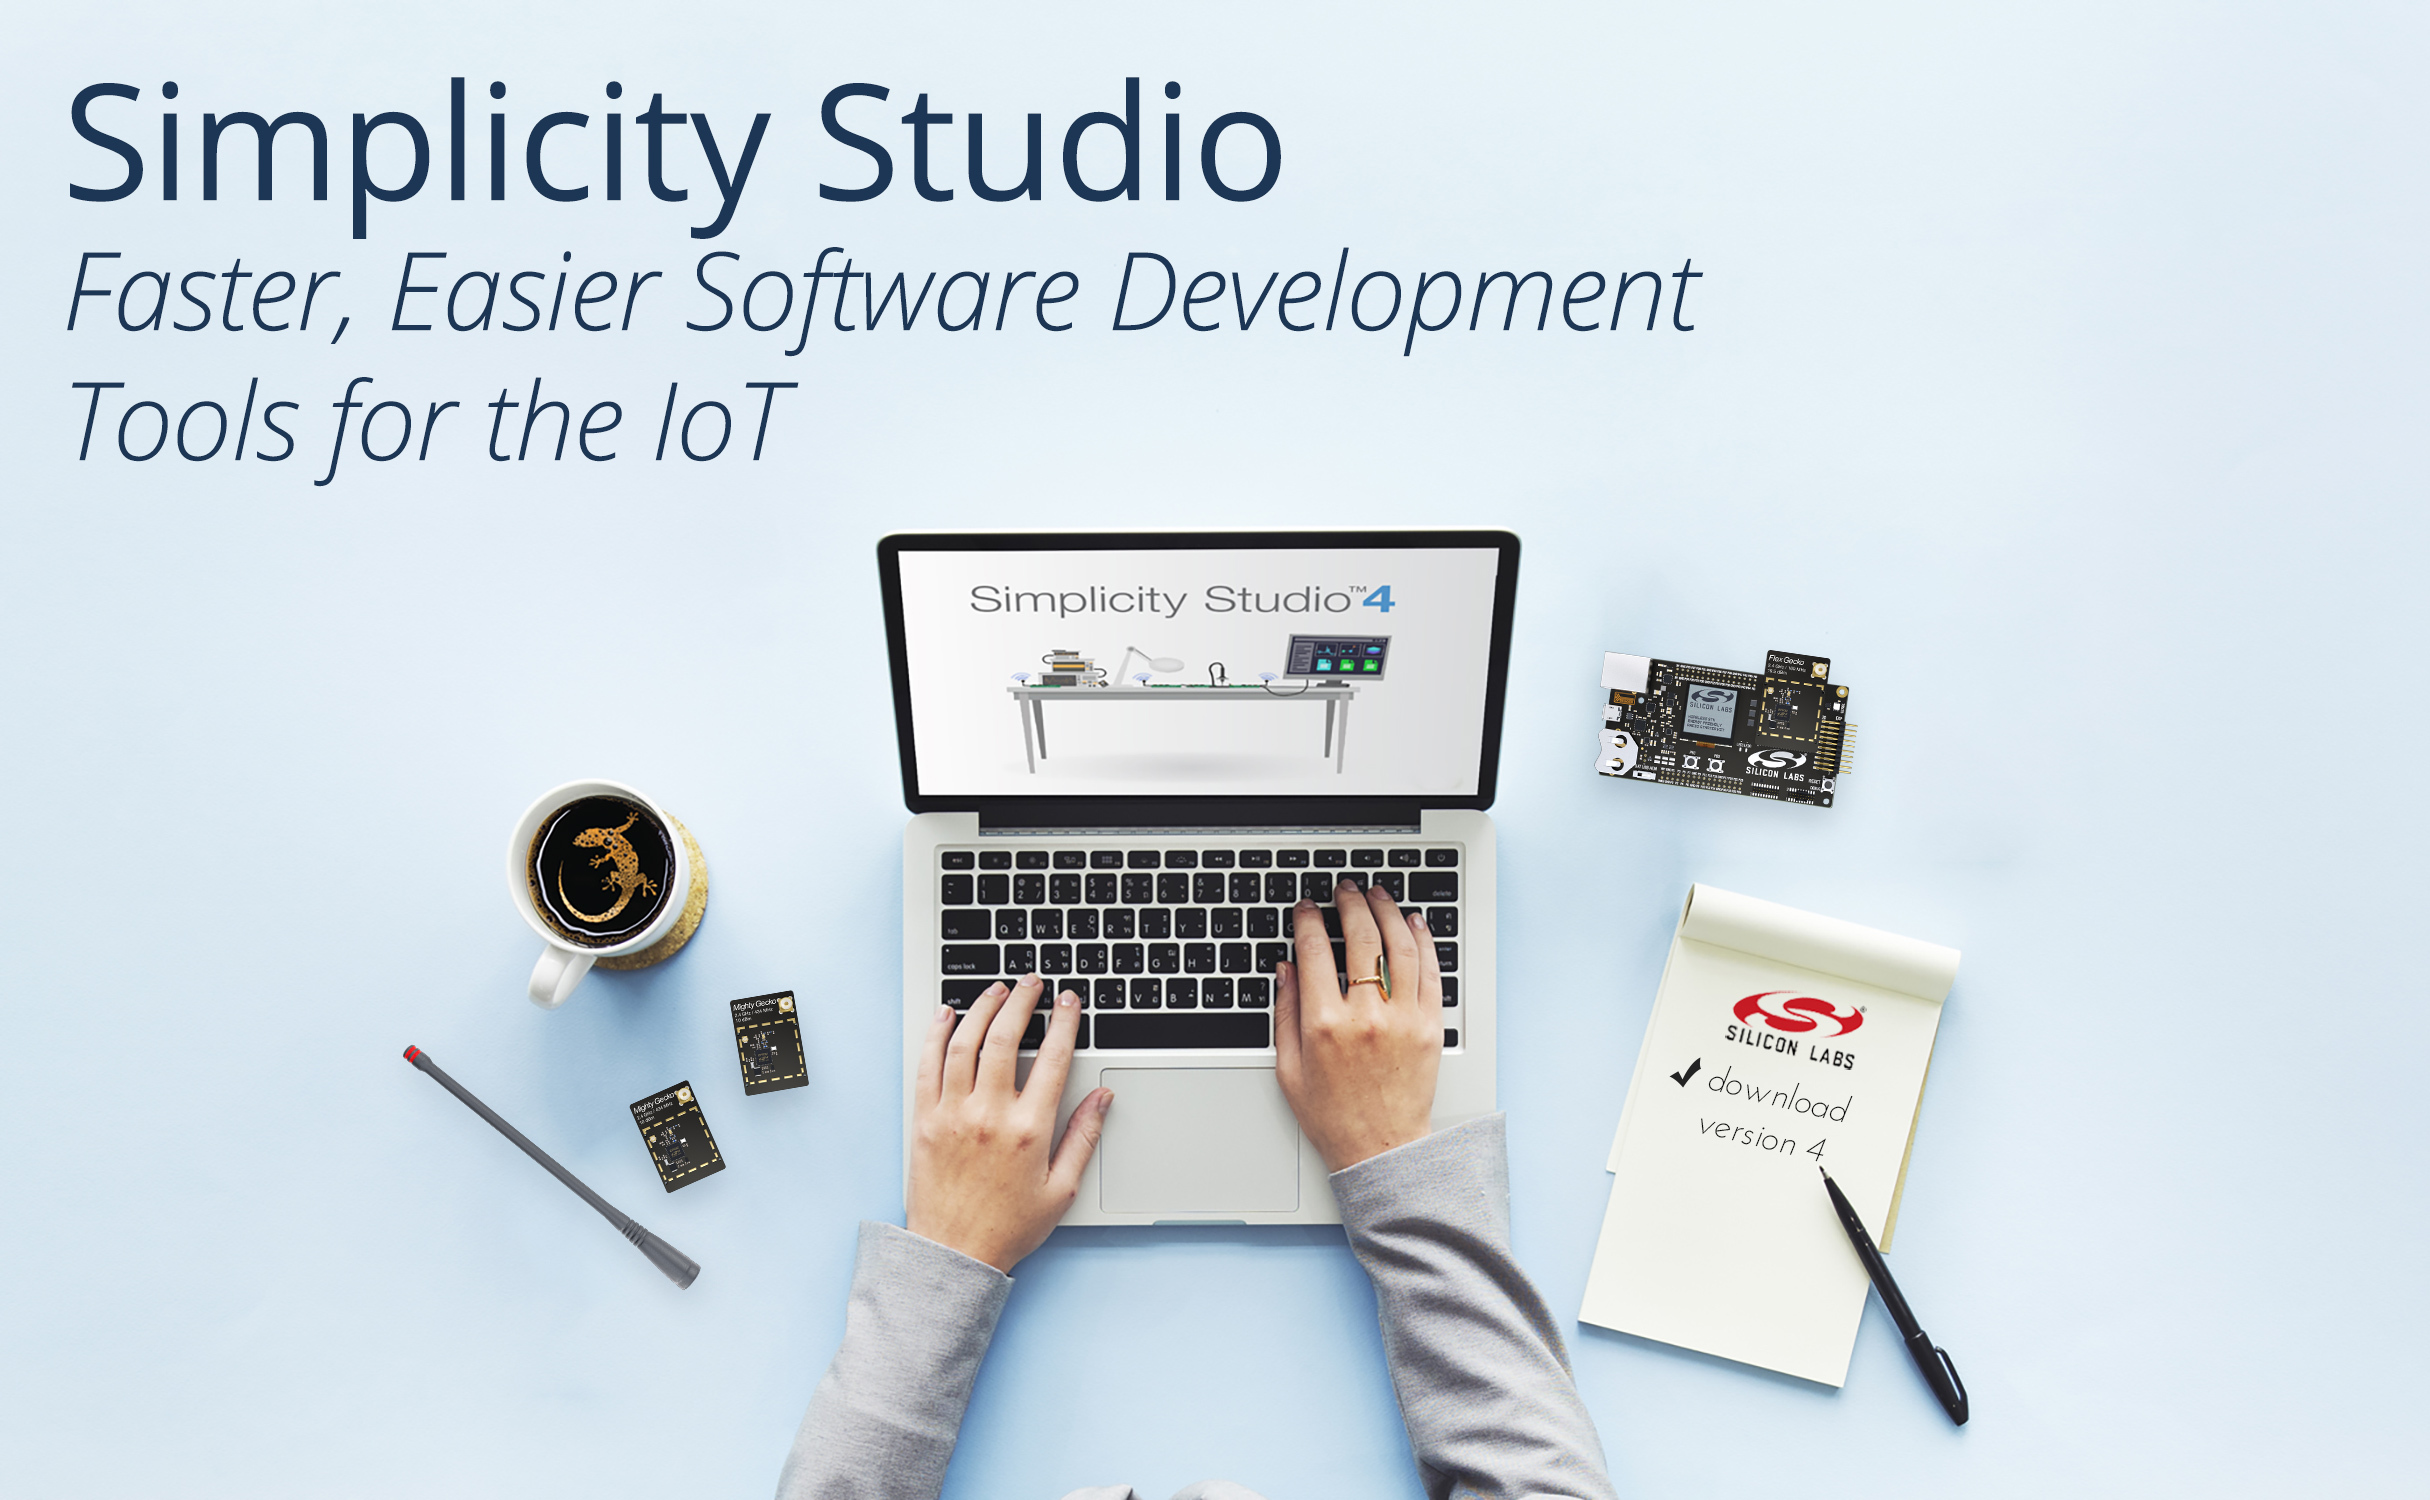 Faster, Easier Simplicity Studio Software from Silicon Labs Sets the